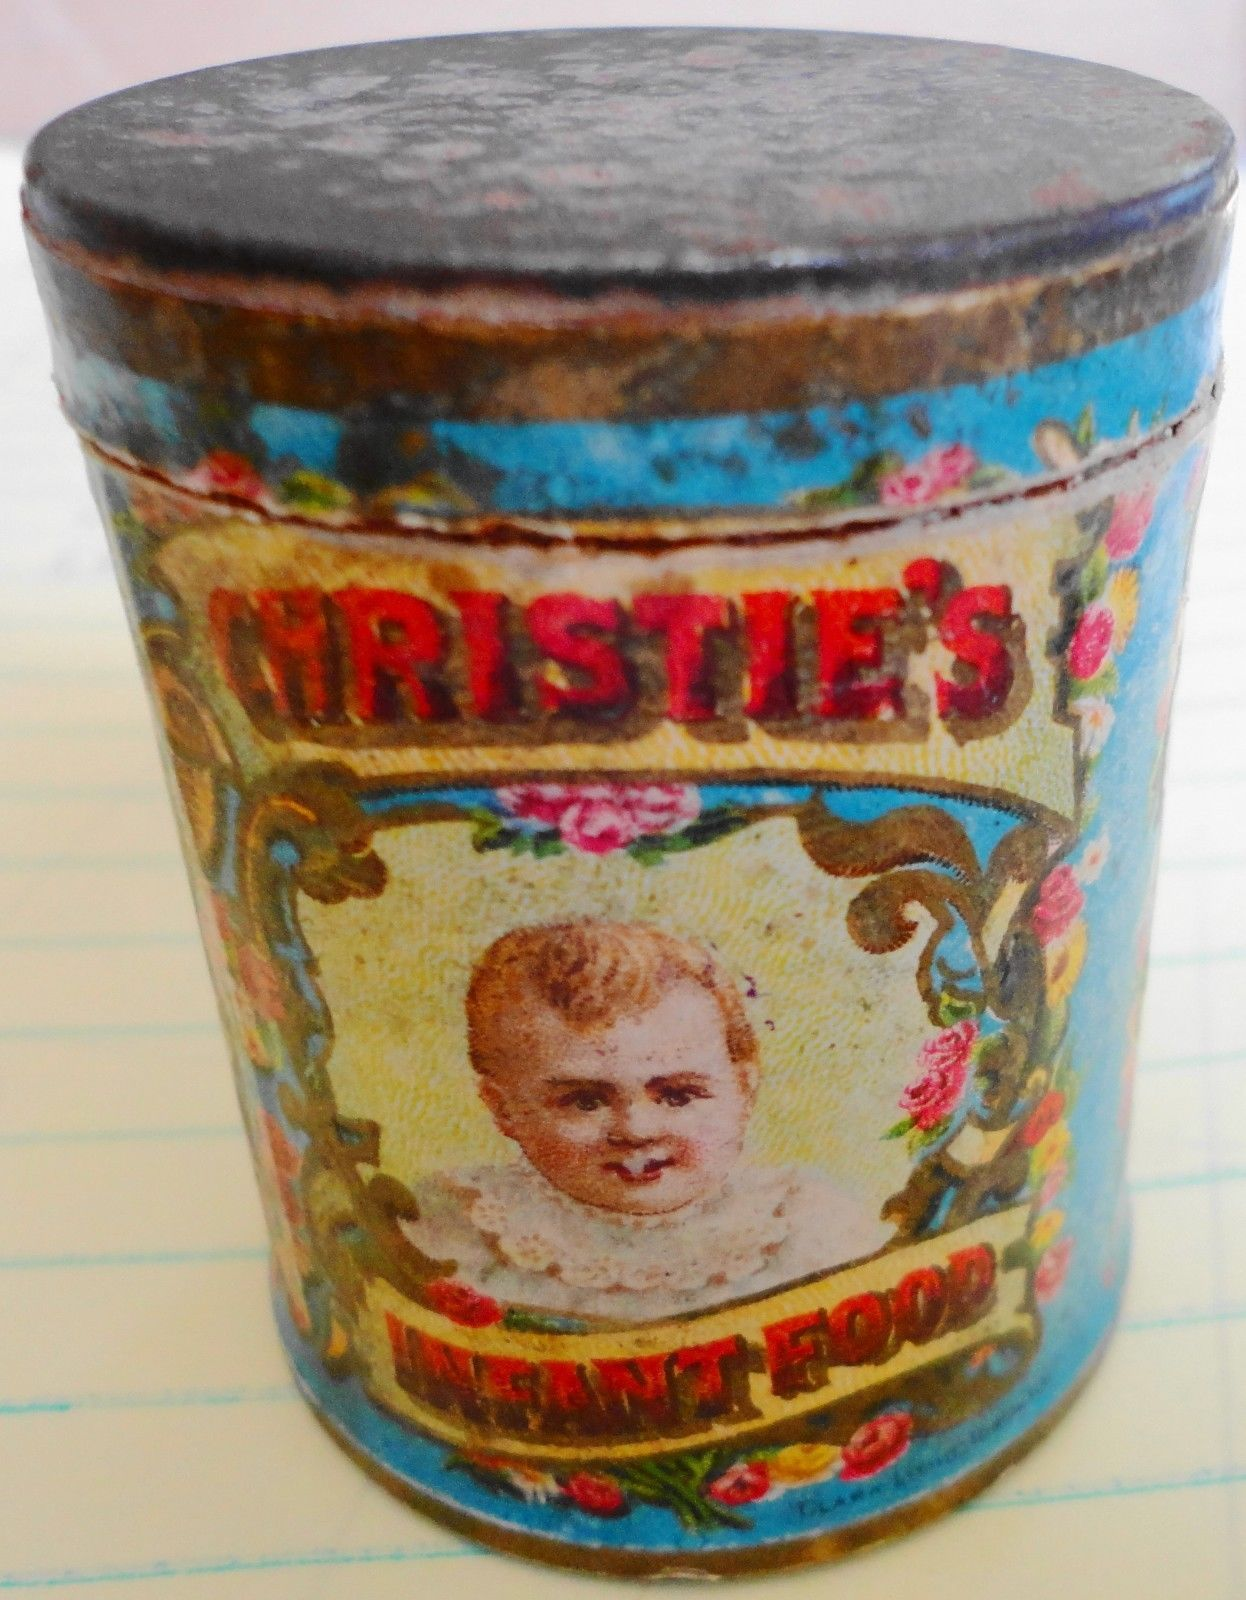 Christies infant food paper label tin a small sample